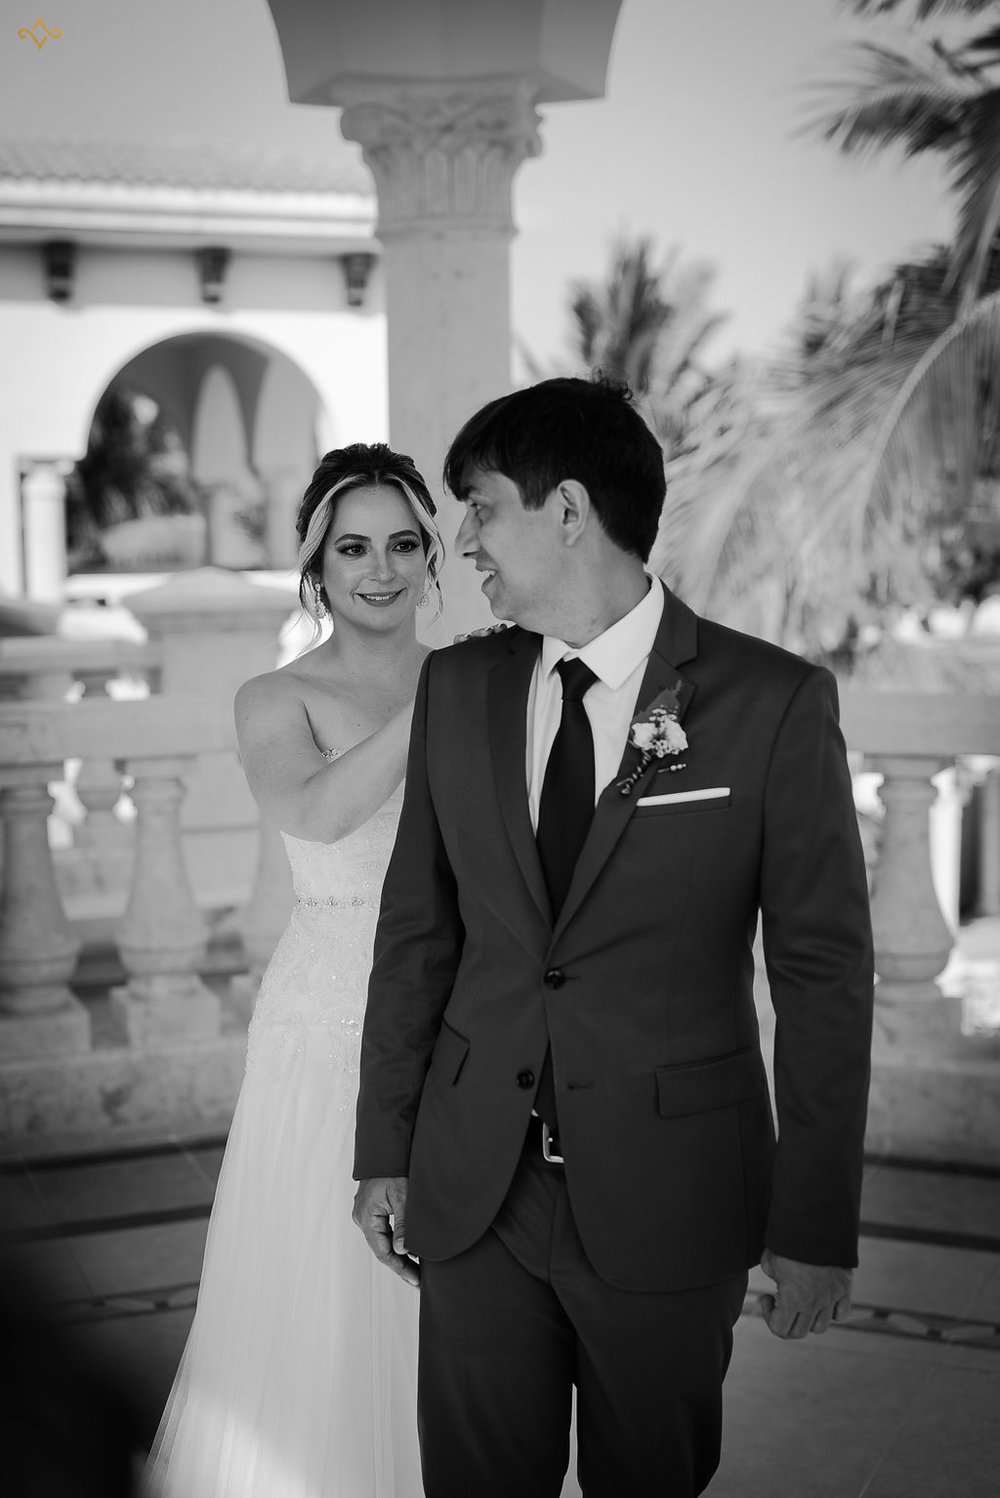 cancun-destination-wedding-mexico-villa-la-joya-12.jpg